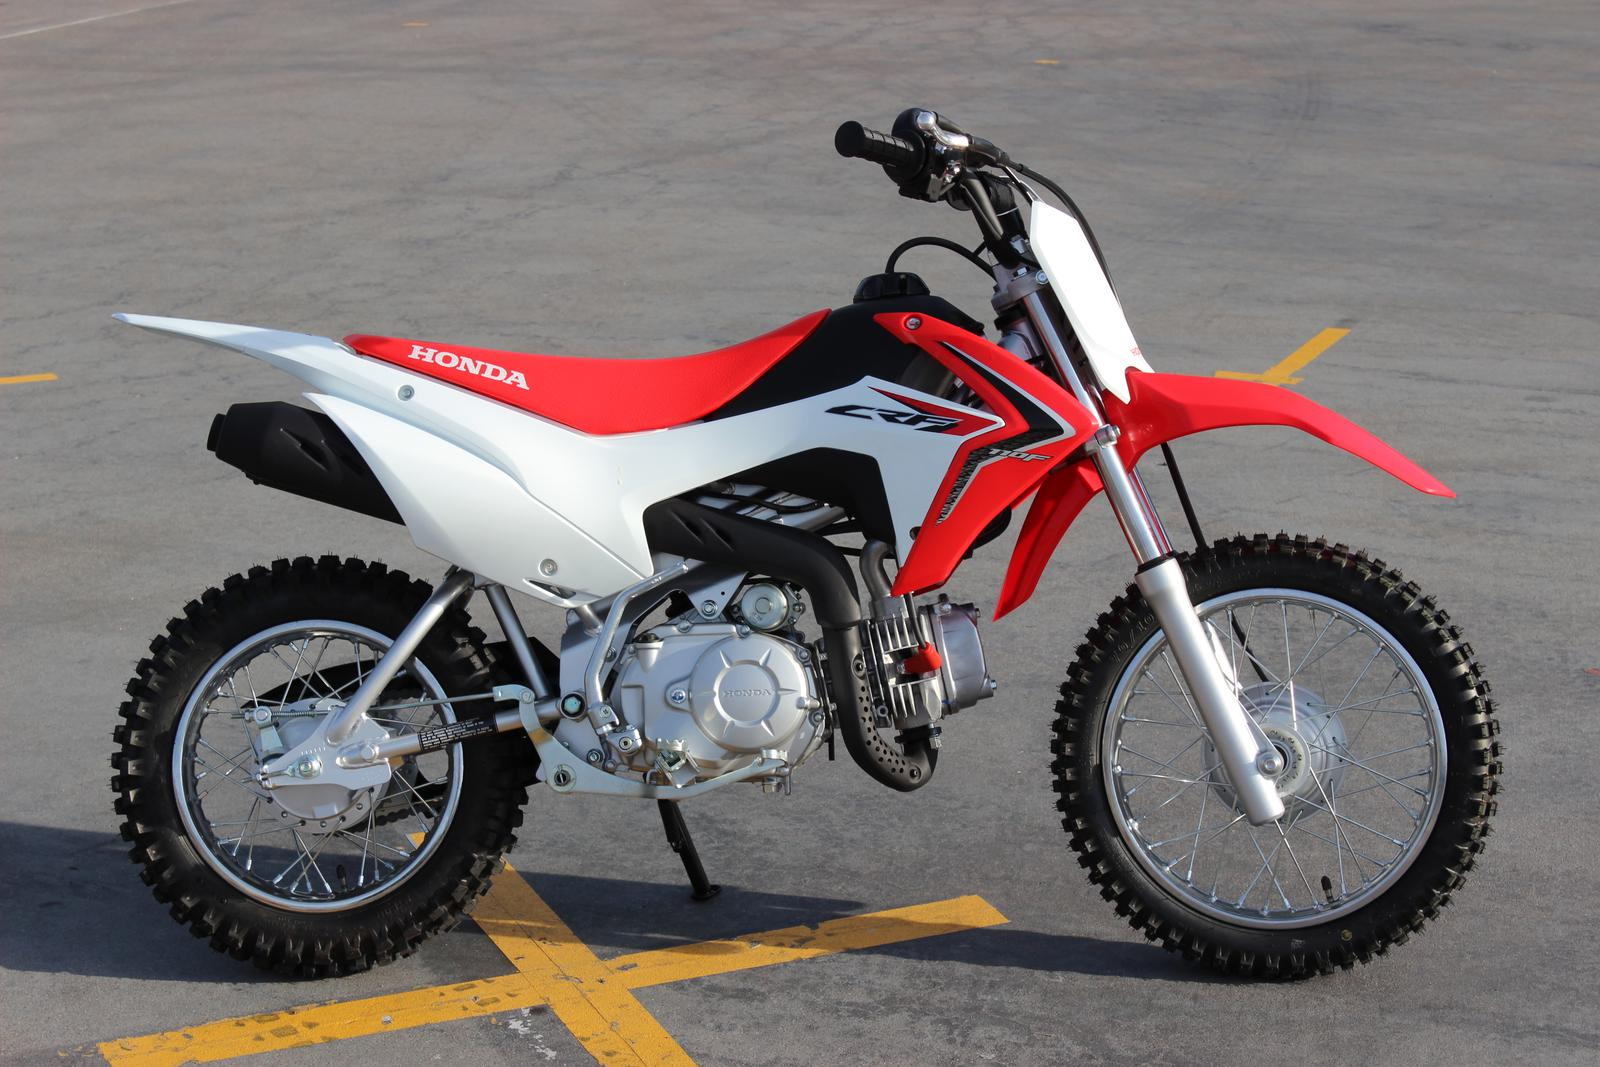 2018 Honda CRF110F for sale in Scottsdale, AZ | GO AZ Motorcycles in